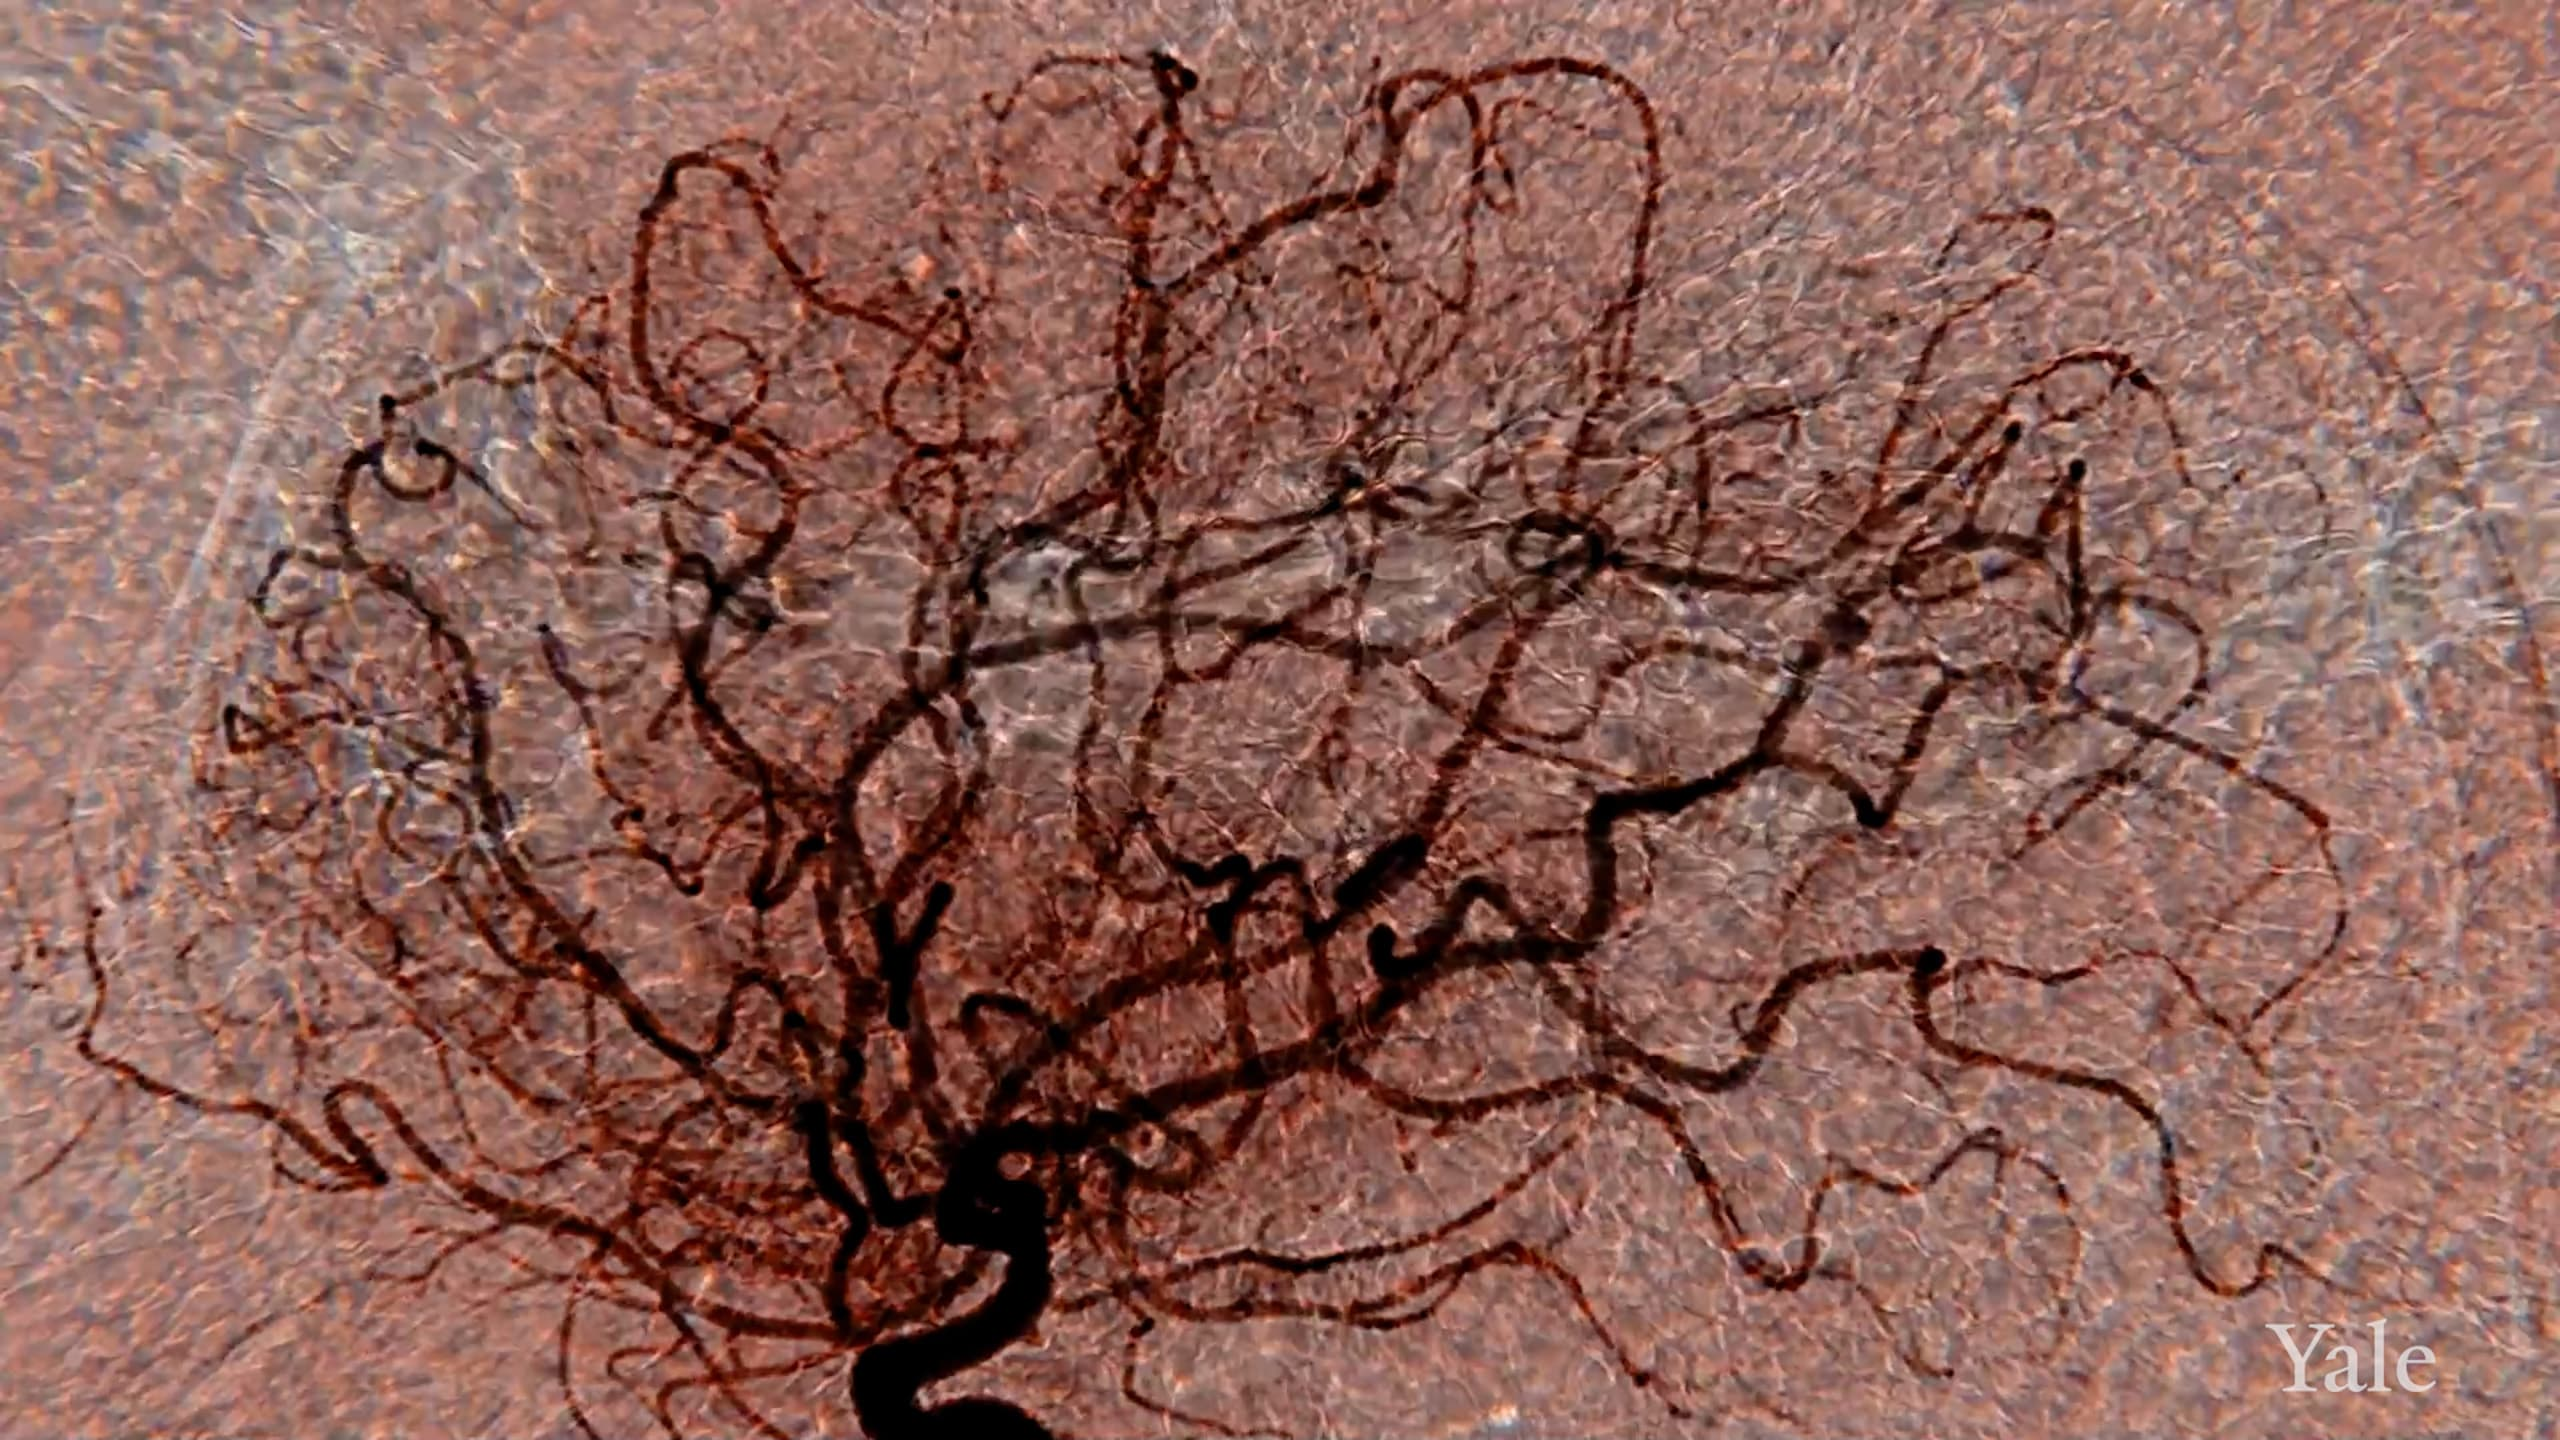 Medical imaging showing blood vessels in the brain with an overlay of red blood cells